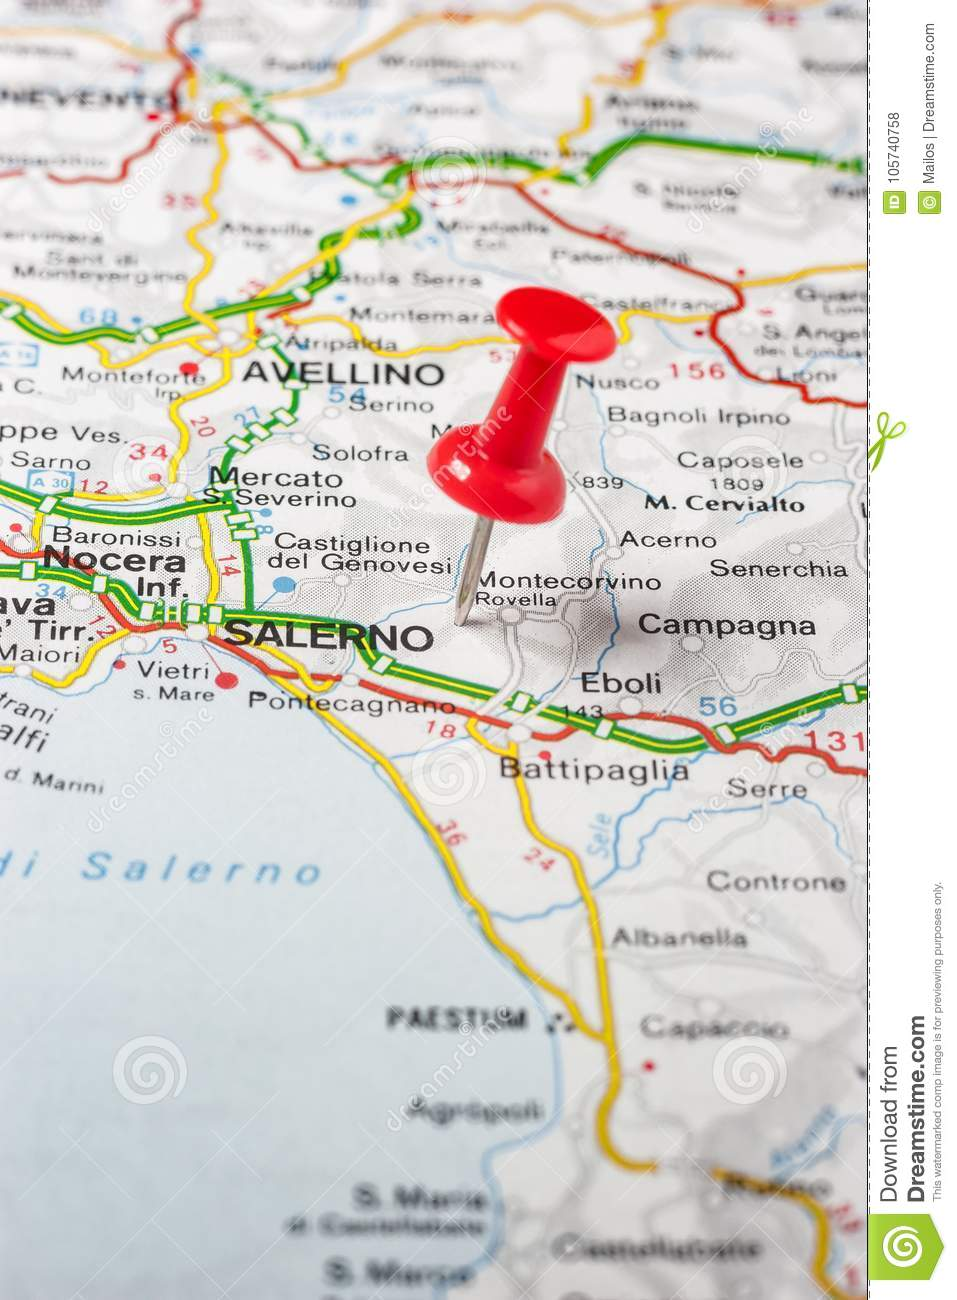 Salerno Pinned On A Map Of Italy Stock Photo Image Of Pinned